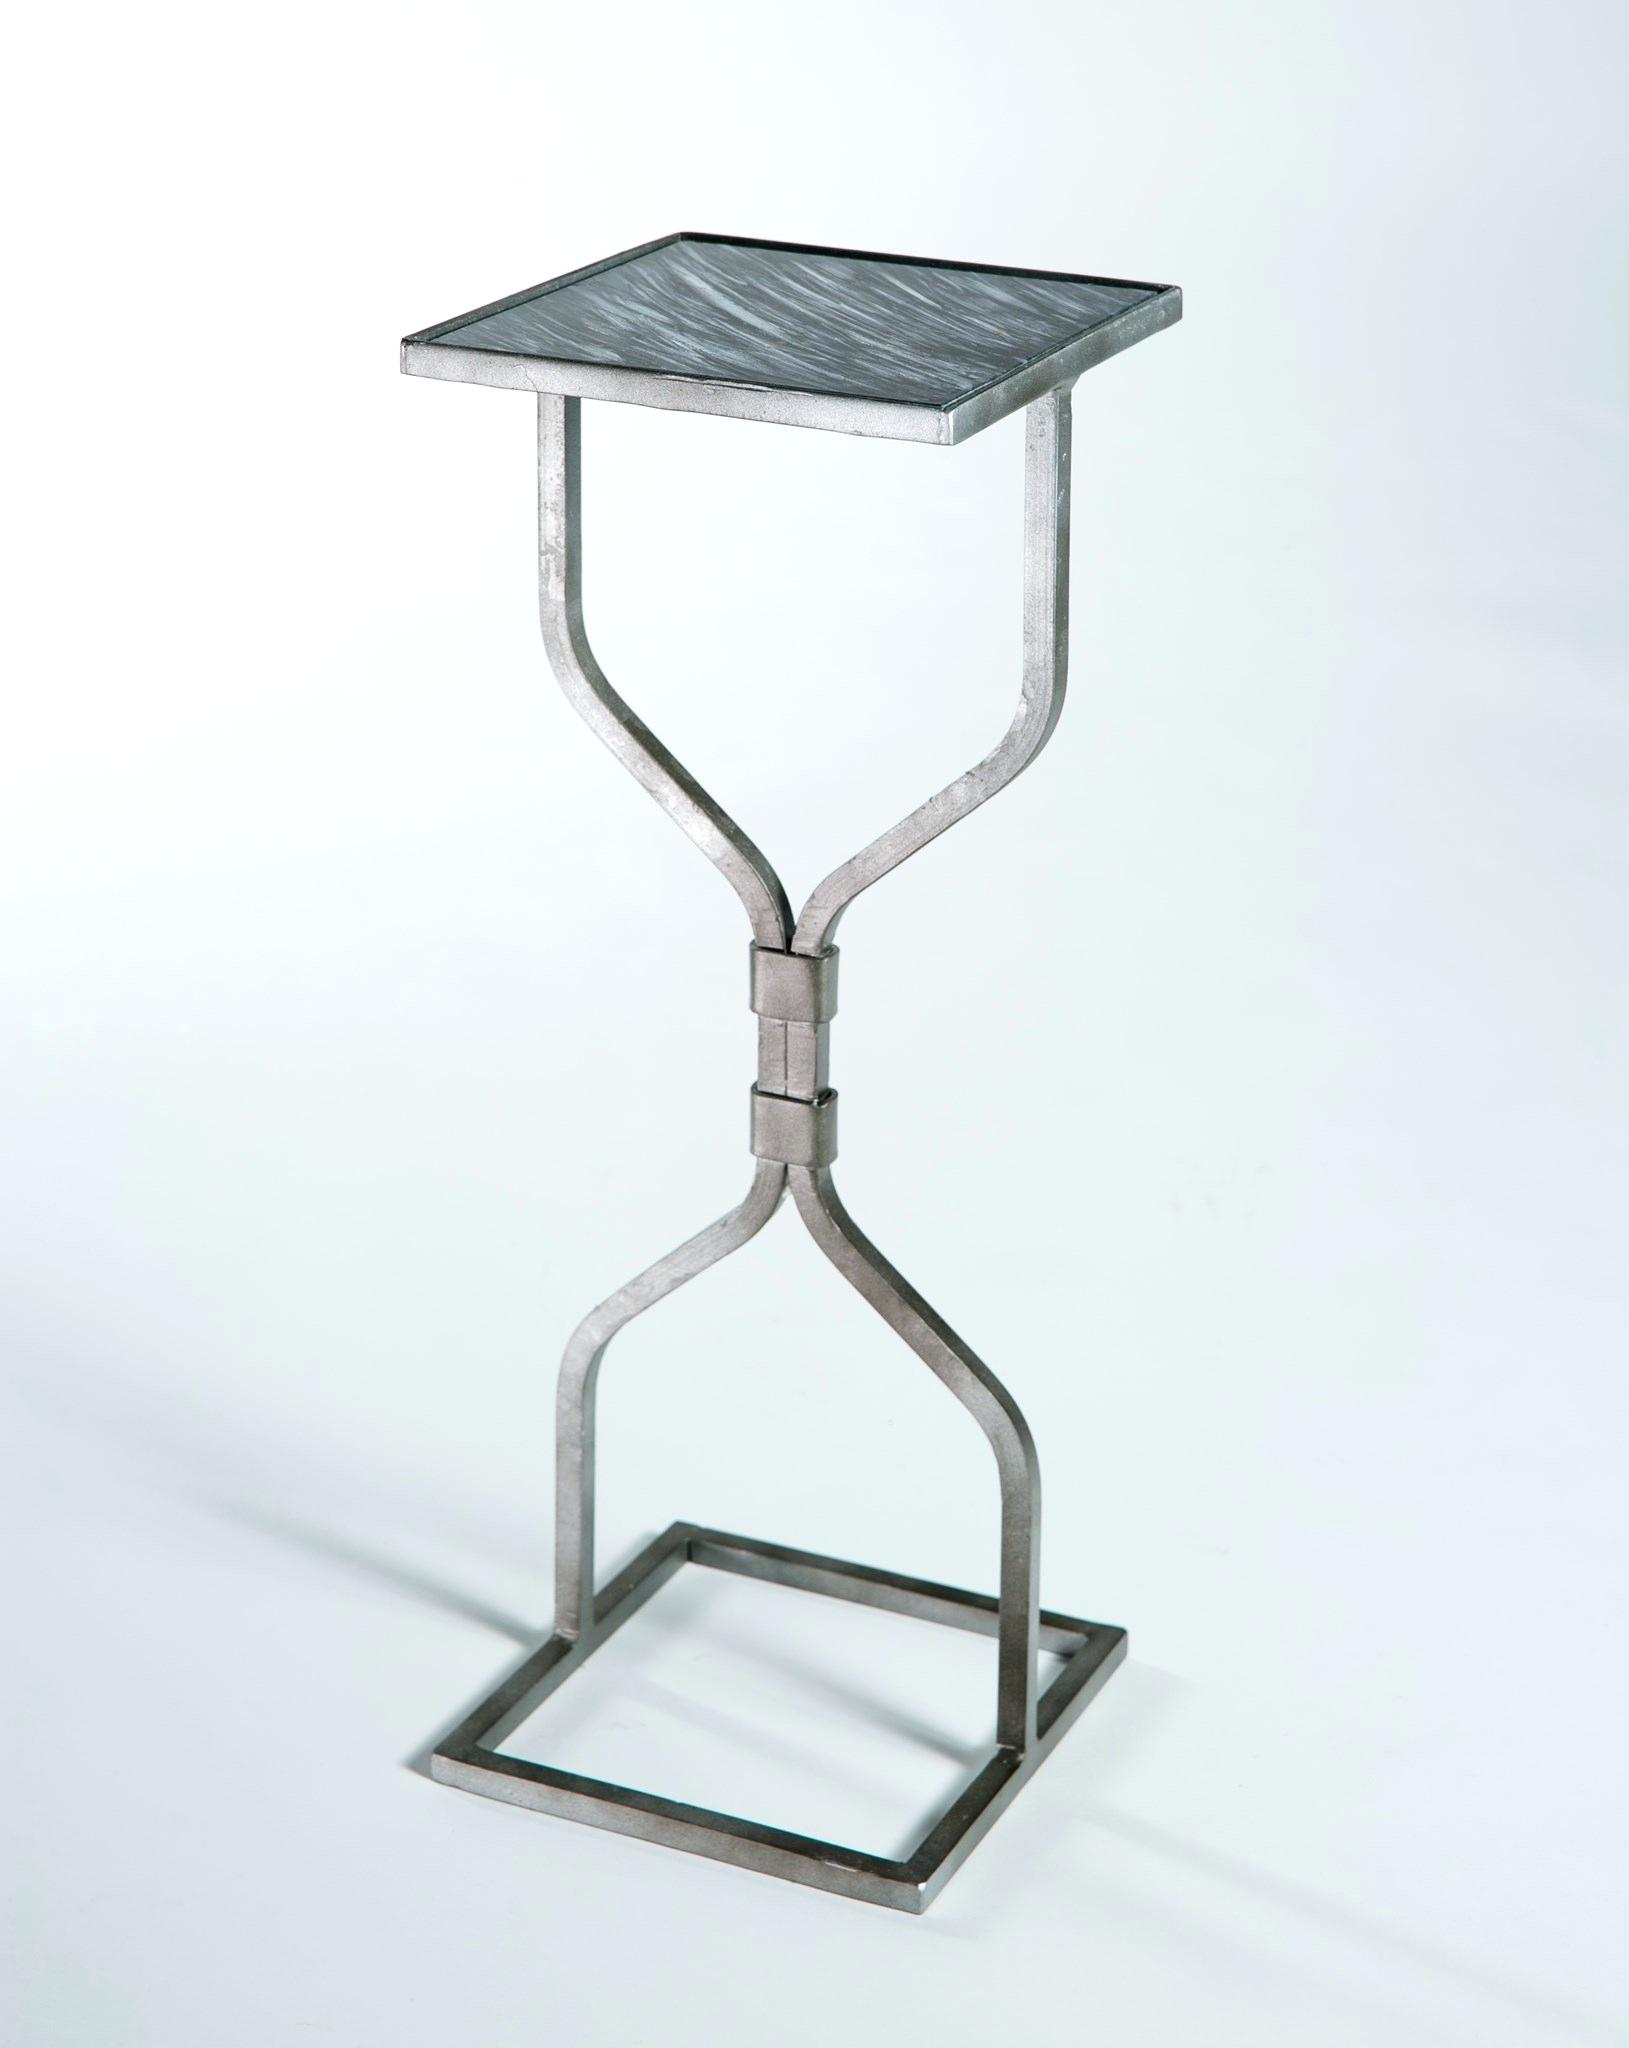 hourglass end table chathamil info accent antique silver with glass top mythic target hardwood furniture beautiful centerpieces for dining room drop leaf teal blue home